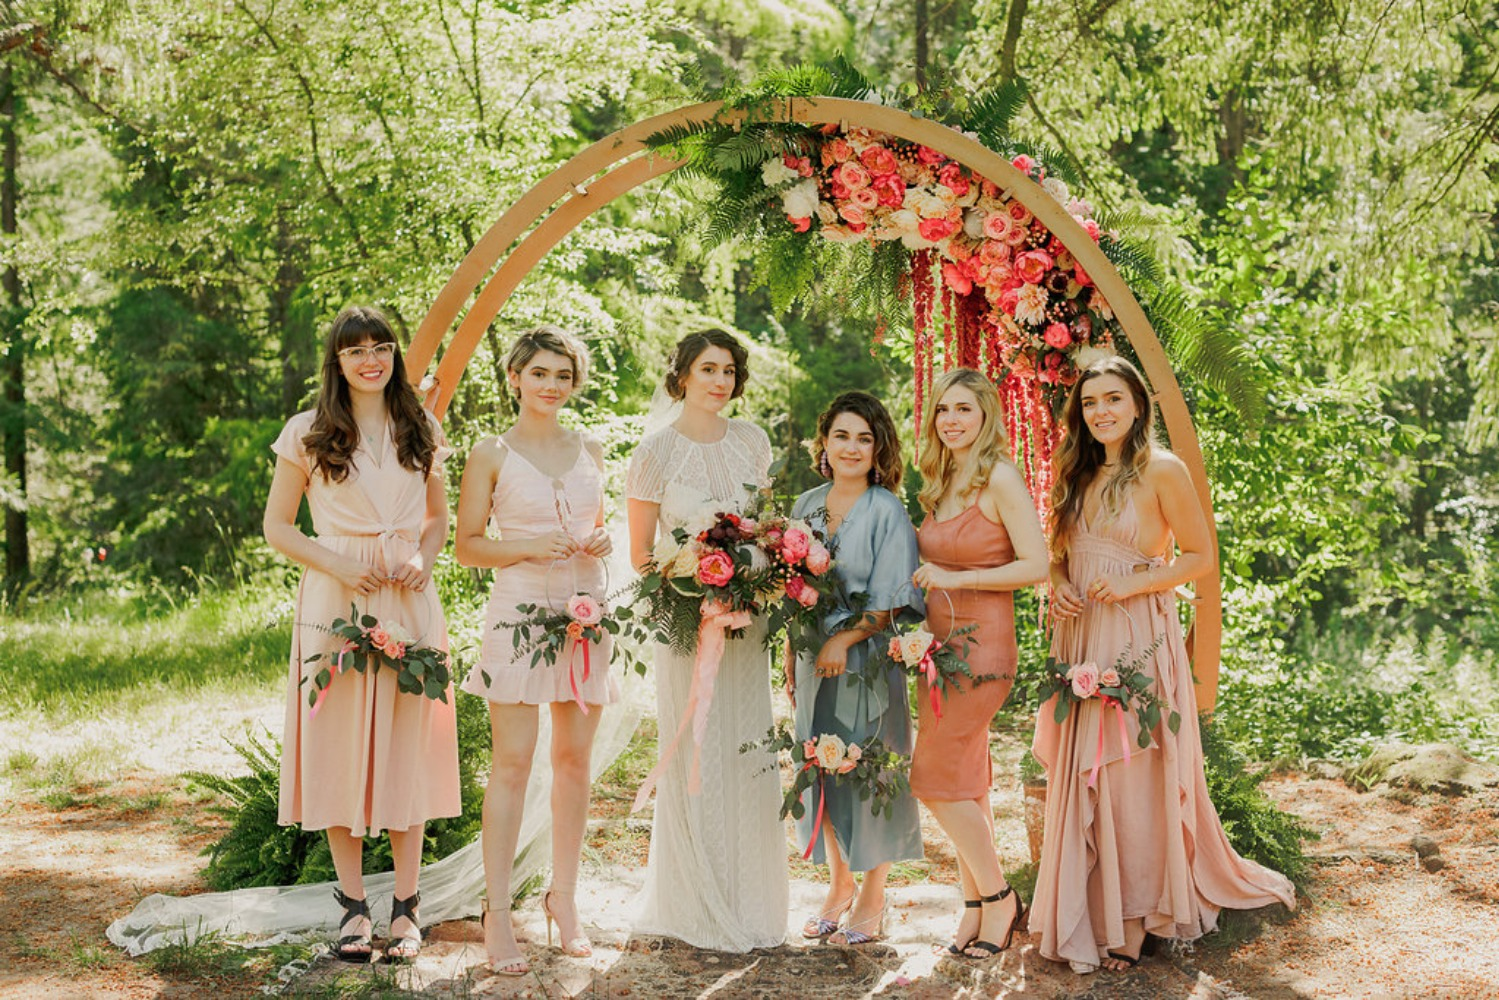 wedding bridesmaids in mismatched dresses